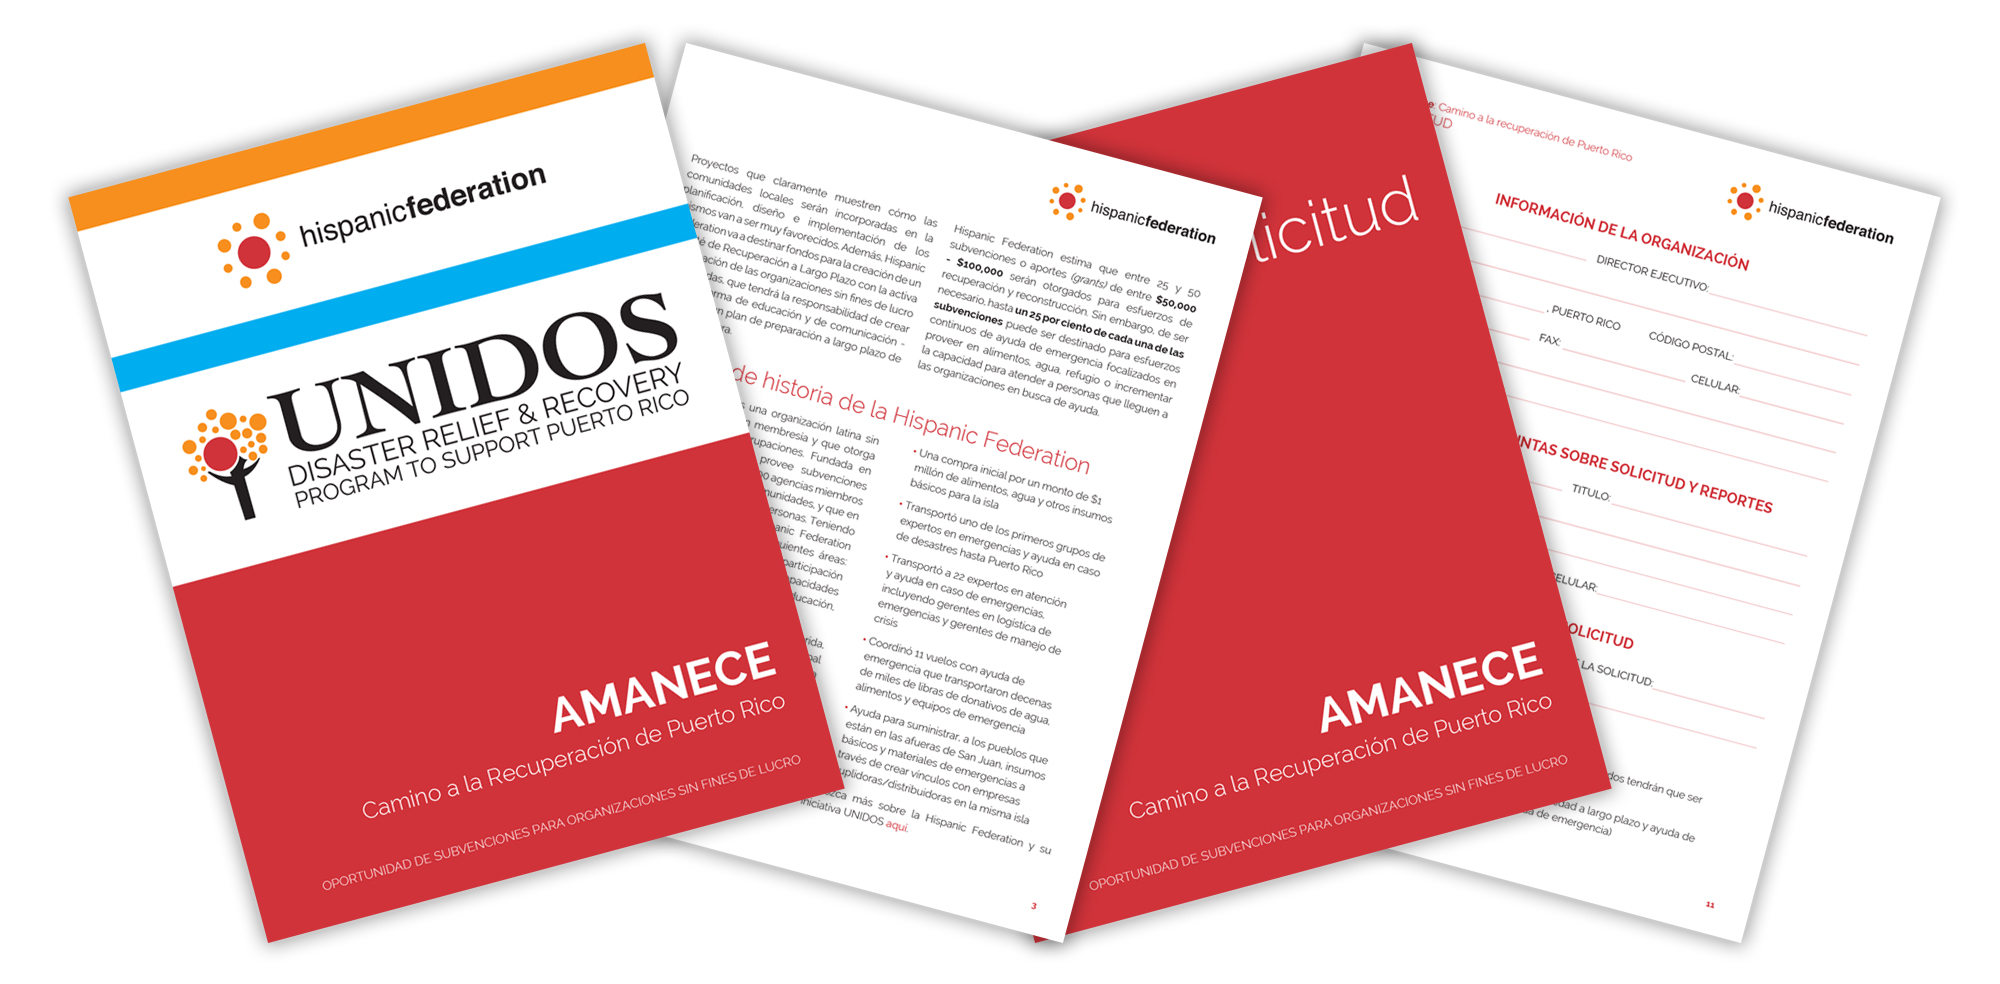 Amanece Grant downloadable application in Spanish.